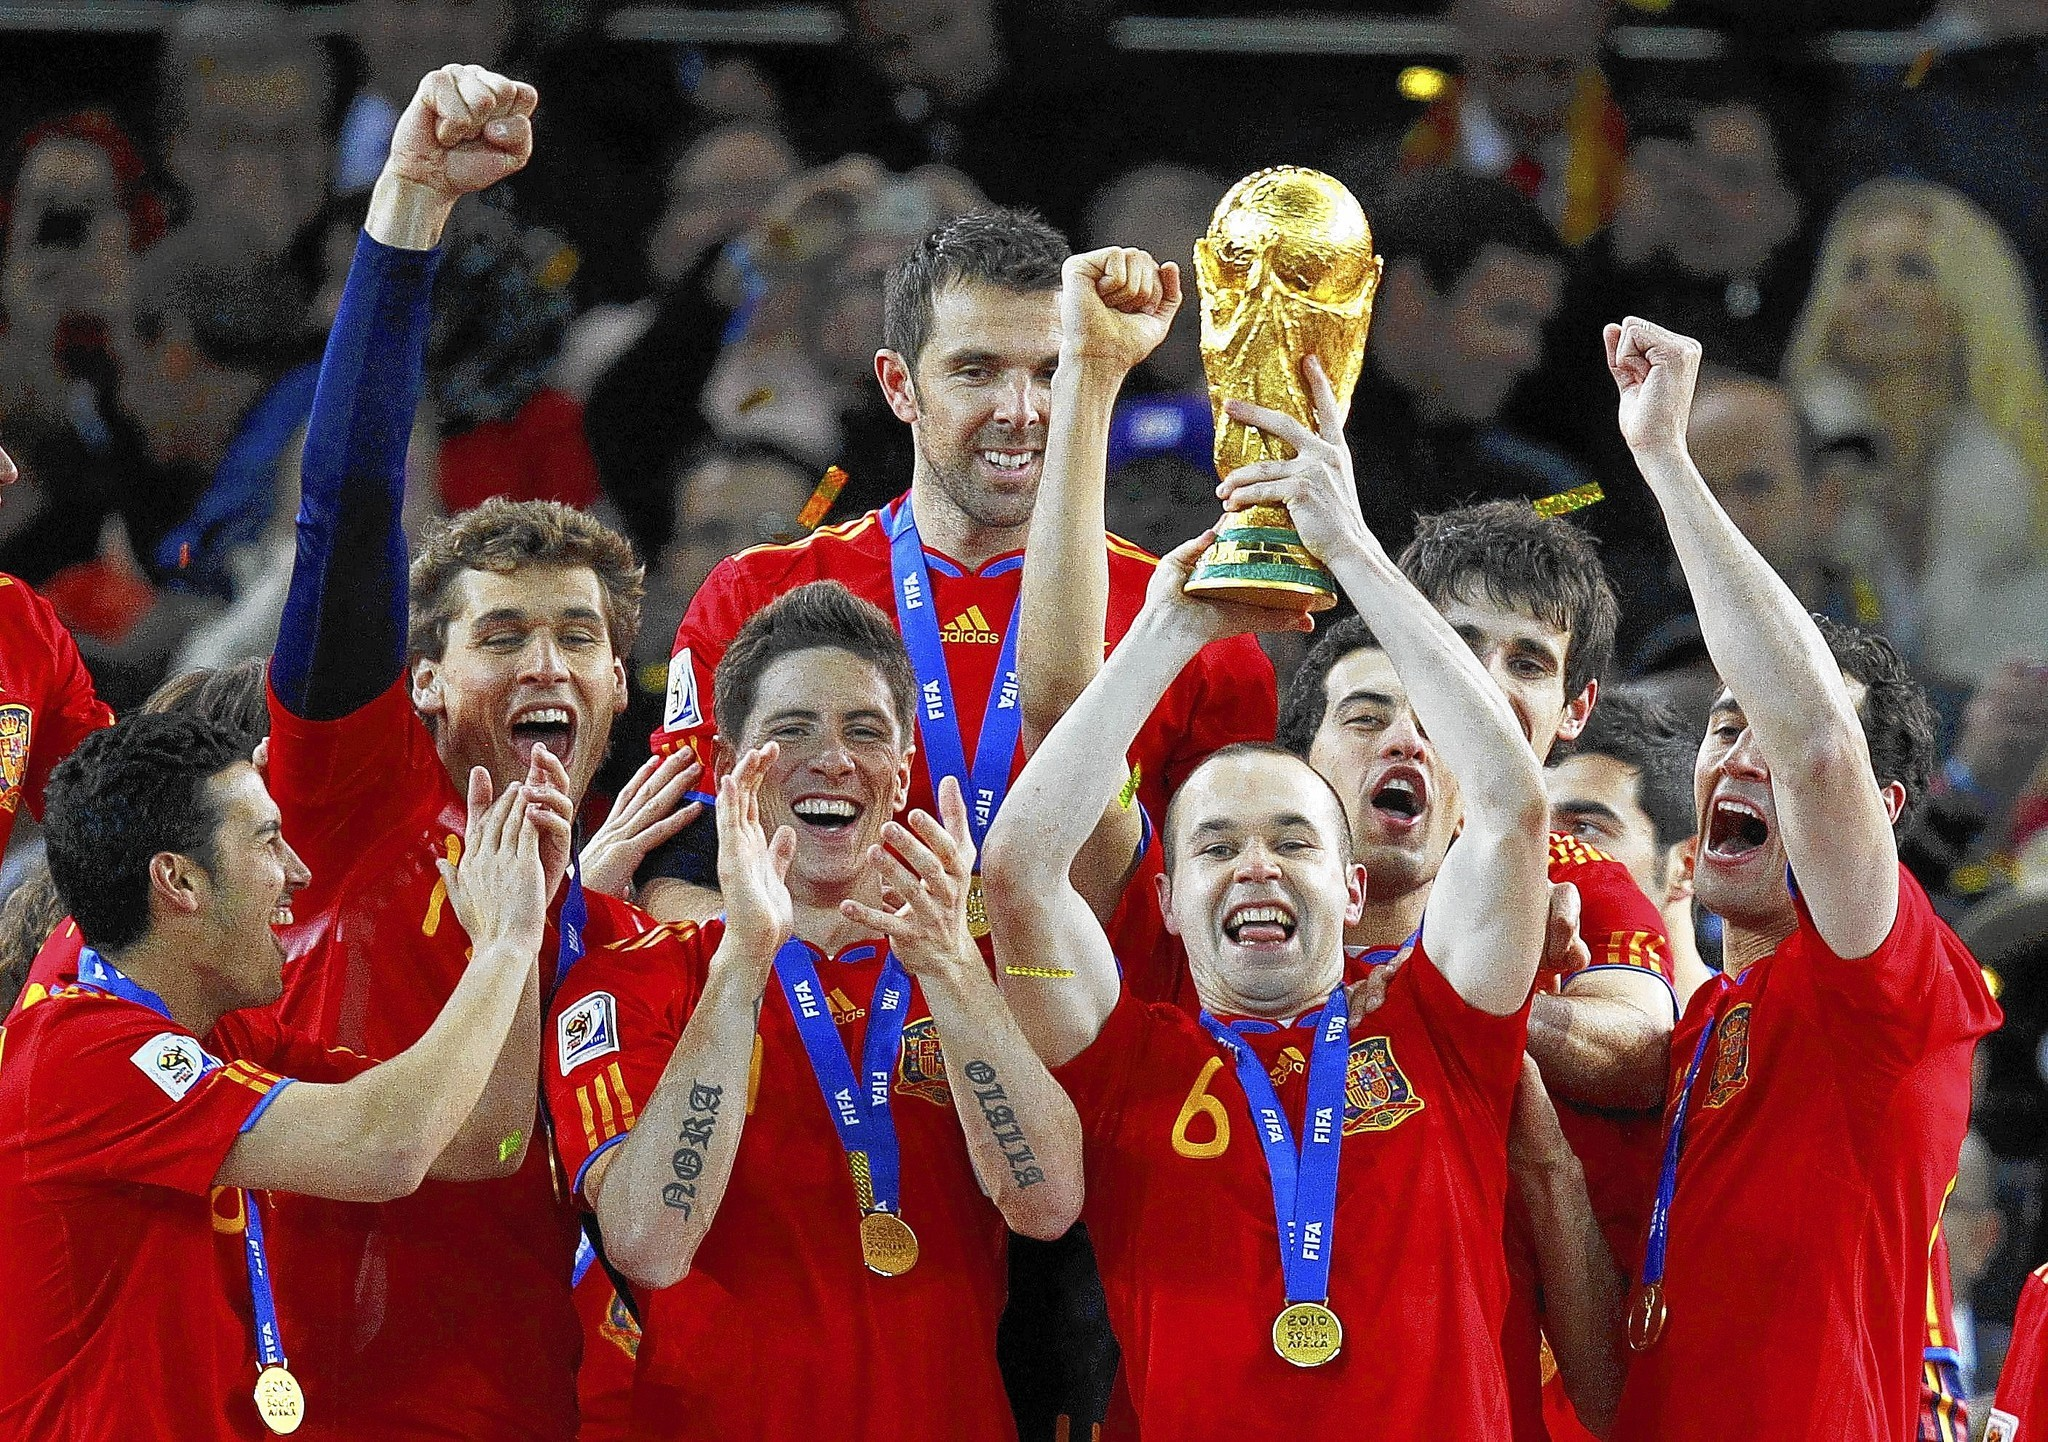 Spain's Andres Iniesta holds the World Cup trophy after the 2010 World Cup final soccer match between Netherlands and Spain at Soccer City stadium in Johannesburg July 11, 2010.